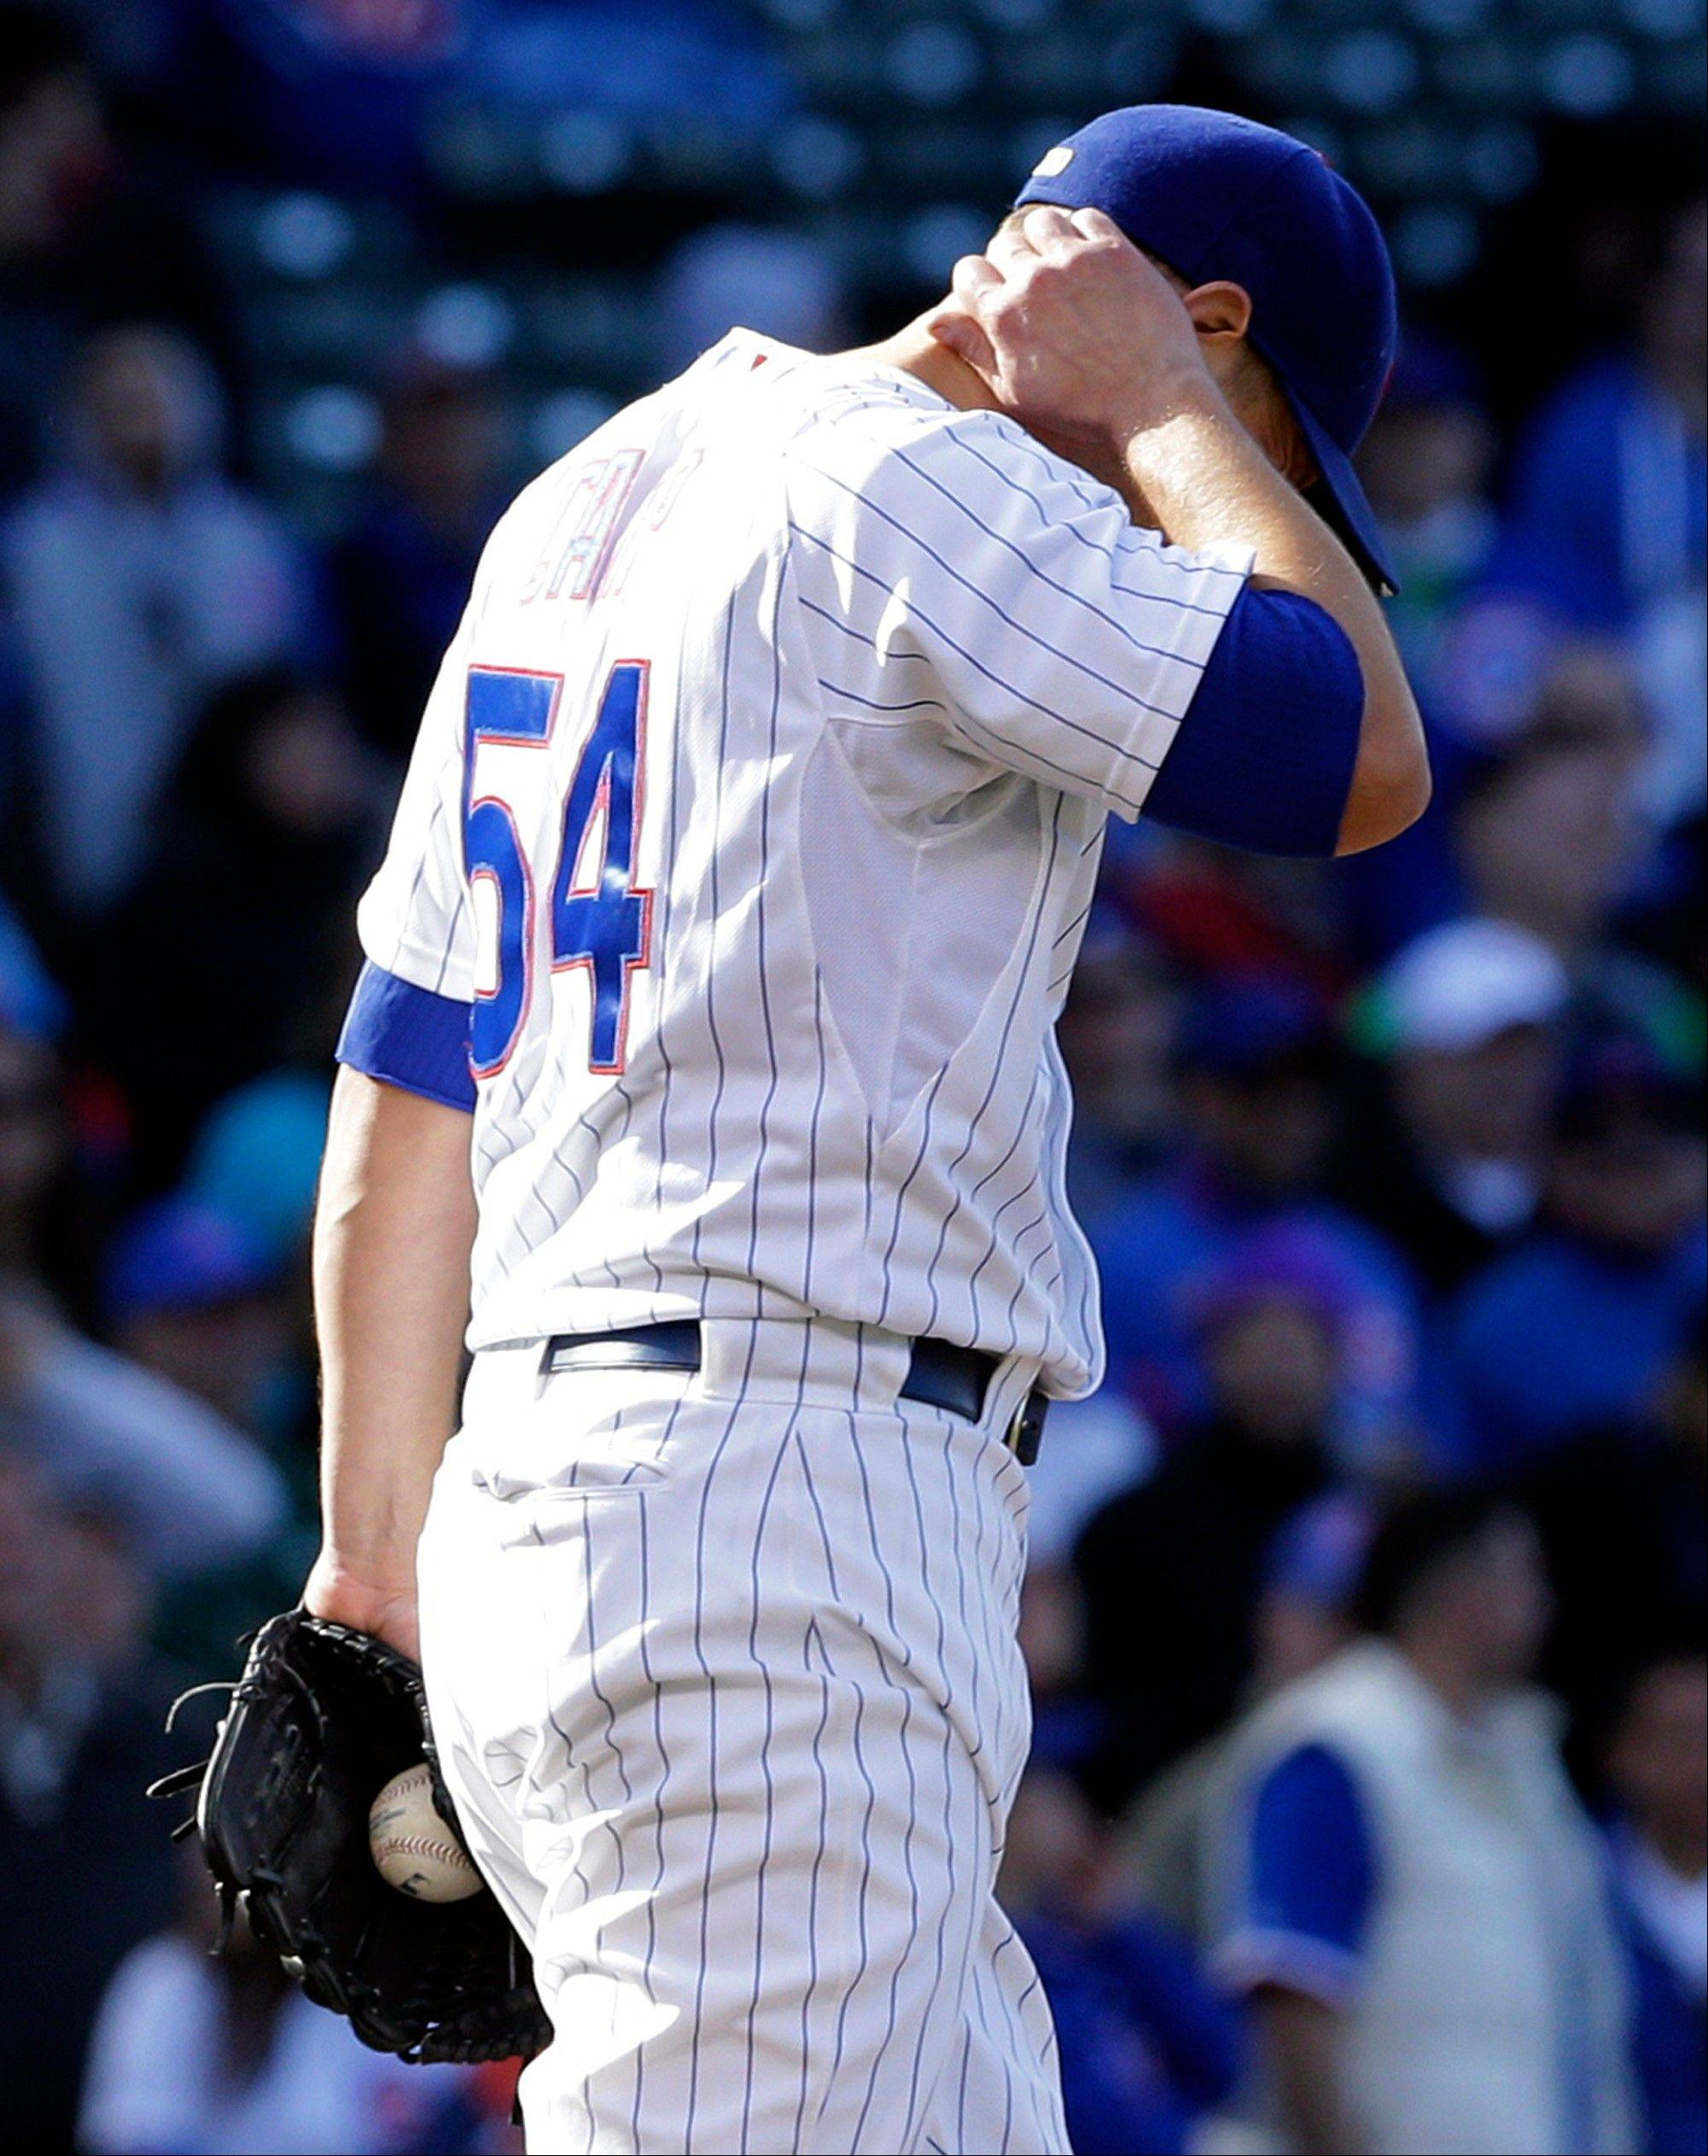 Chicago Cubs relief pitcher Shawn Camp reacts after San Francisco Giants� Hunter Pence hit a solo home run during the ninth inning of a baseball game in Chicago, Sunday, April 14, 2013. The Giants won 10-7.